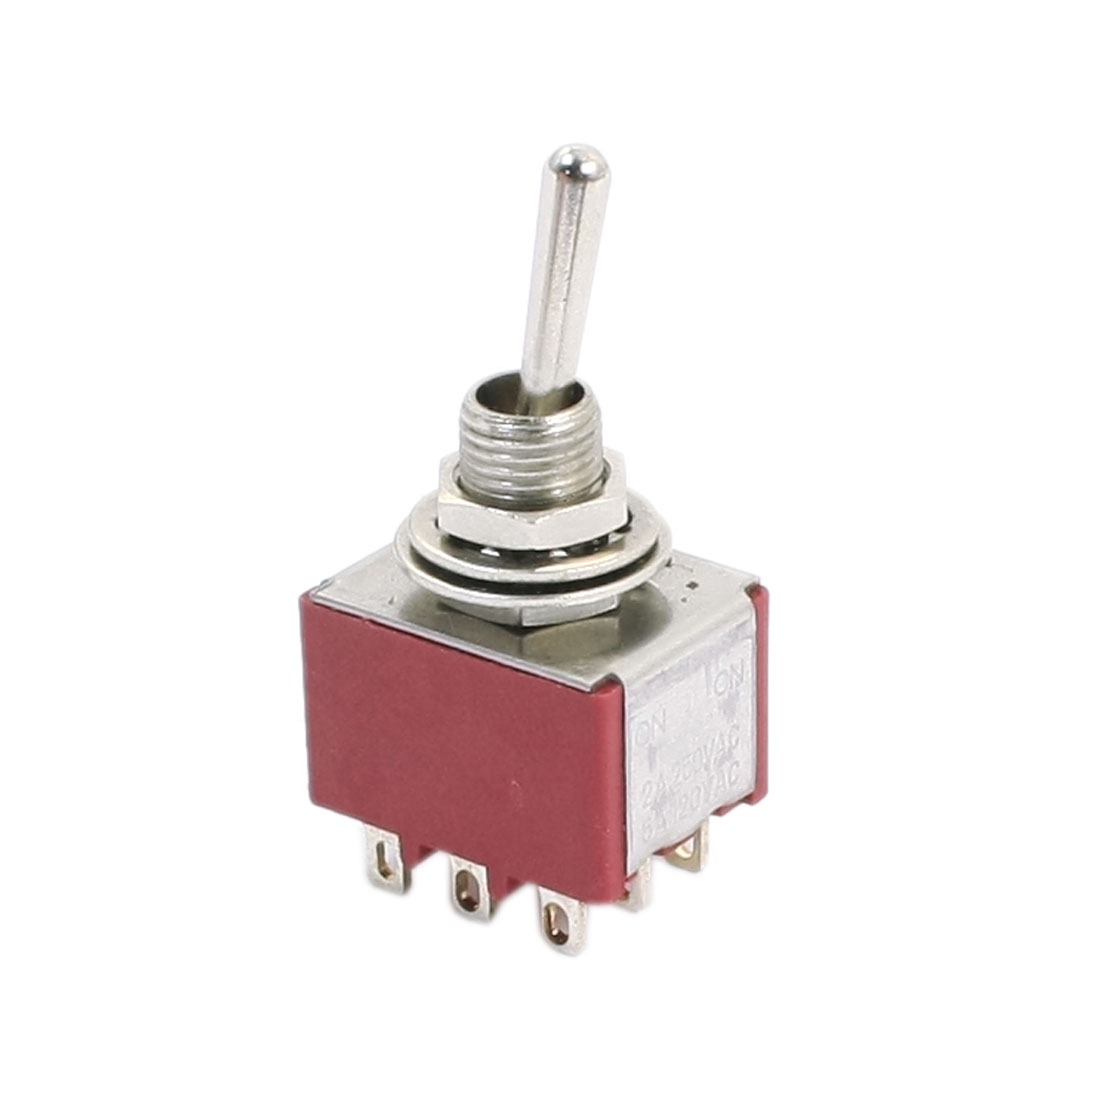 6mm Mounting 2 Position 9-Terminals 3PDT Toggle Switch AC 250V/2A 120V/5A